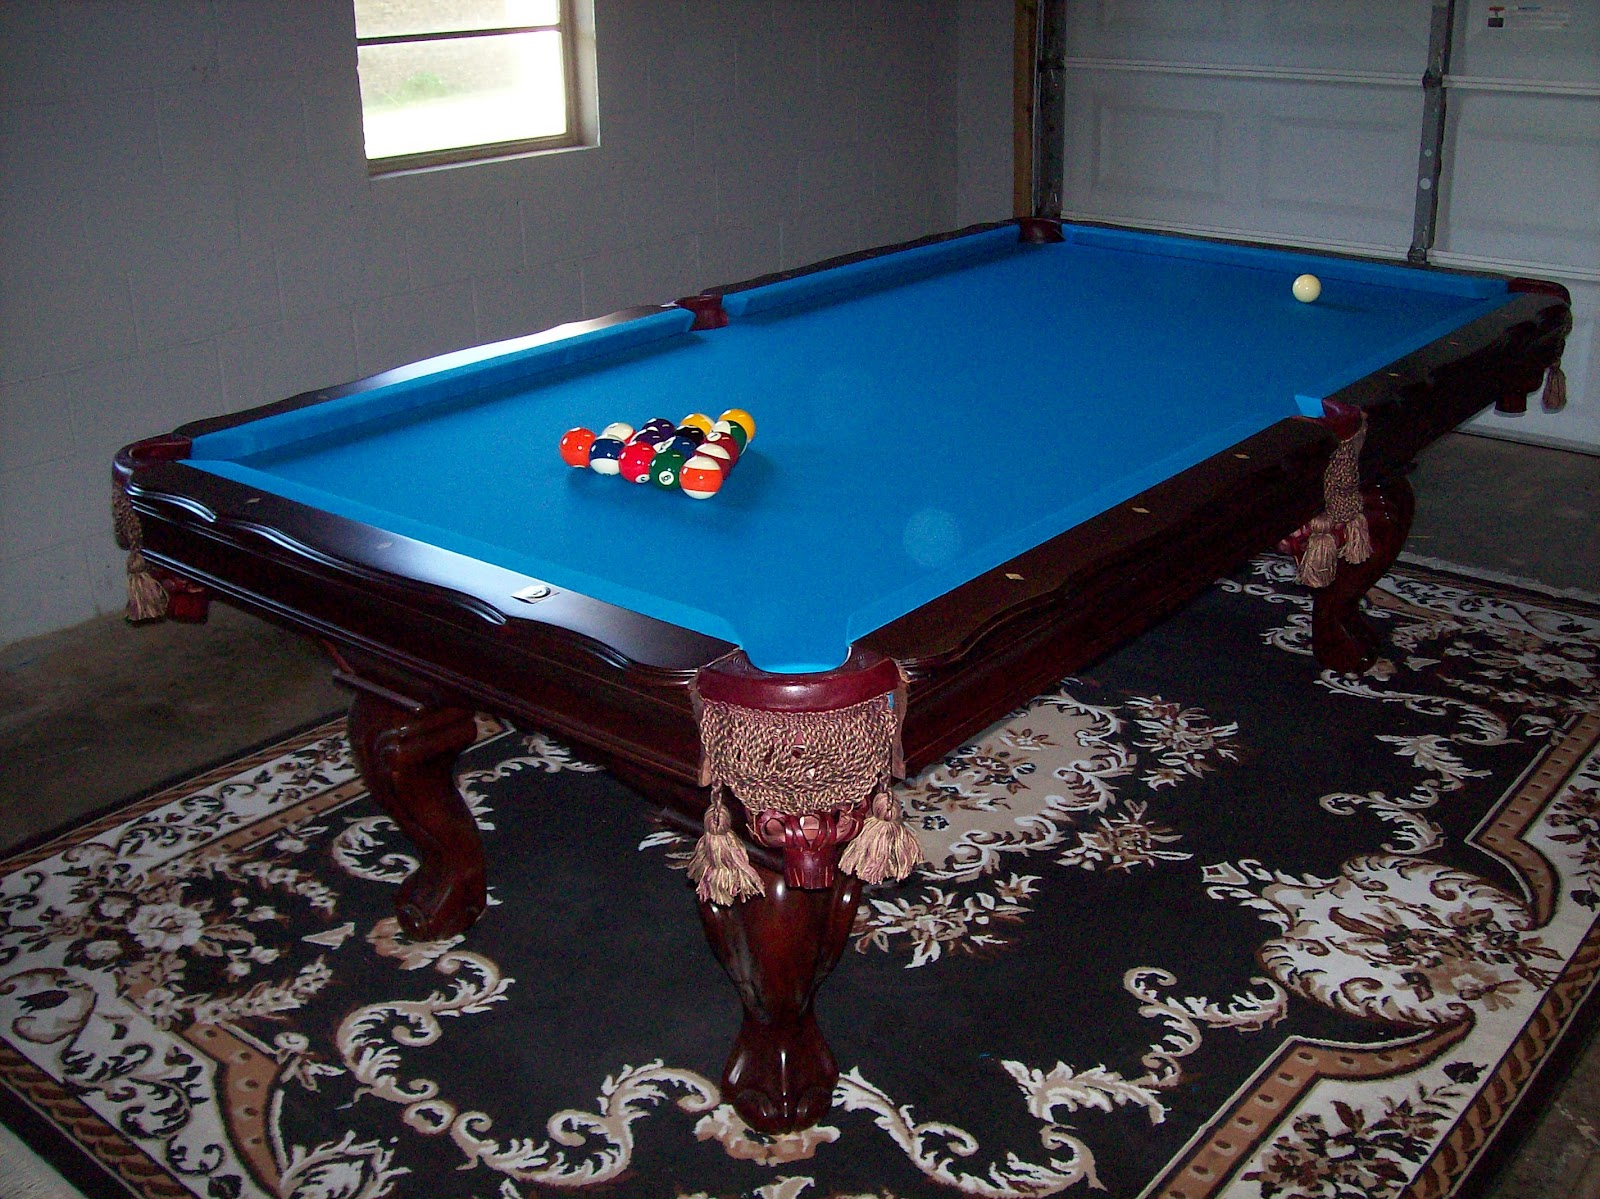 Pool Padawan The Saga Of The New Pool Table - Buy my pool table